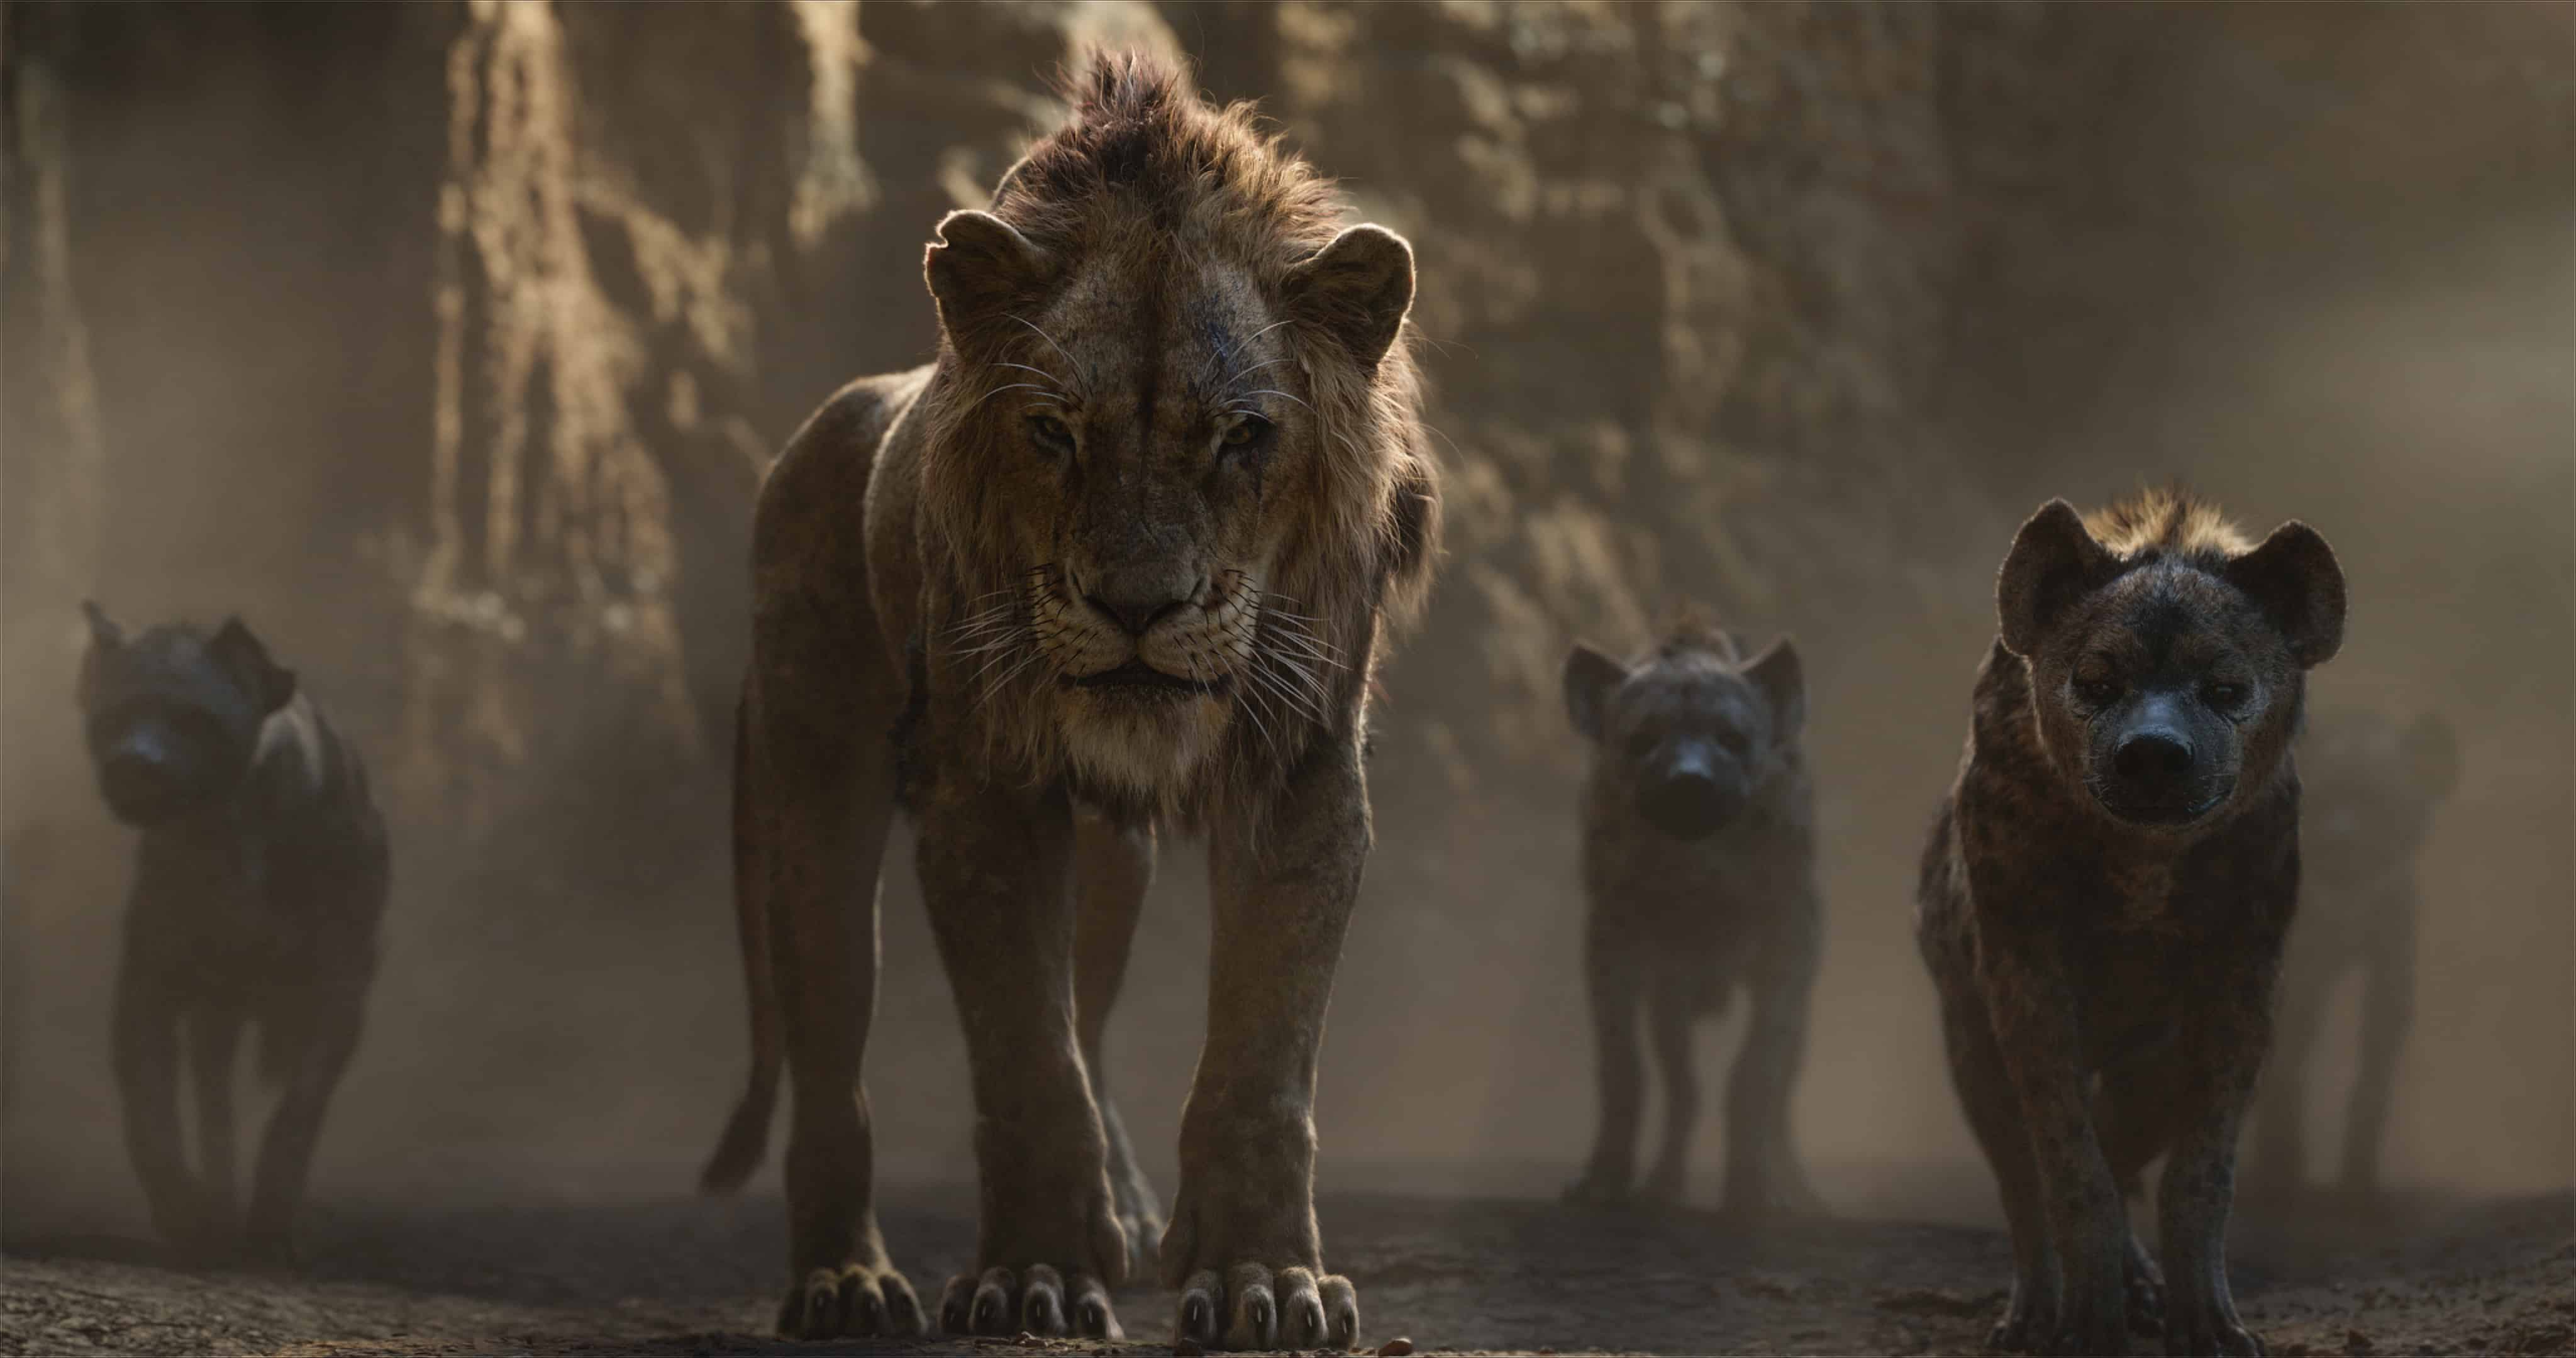 Is The Lion King kid friendly or is it too scary for kids?